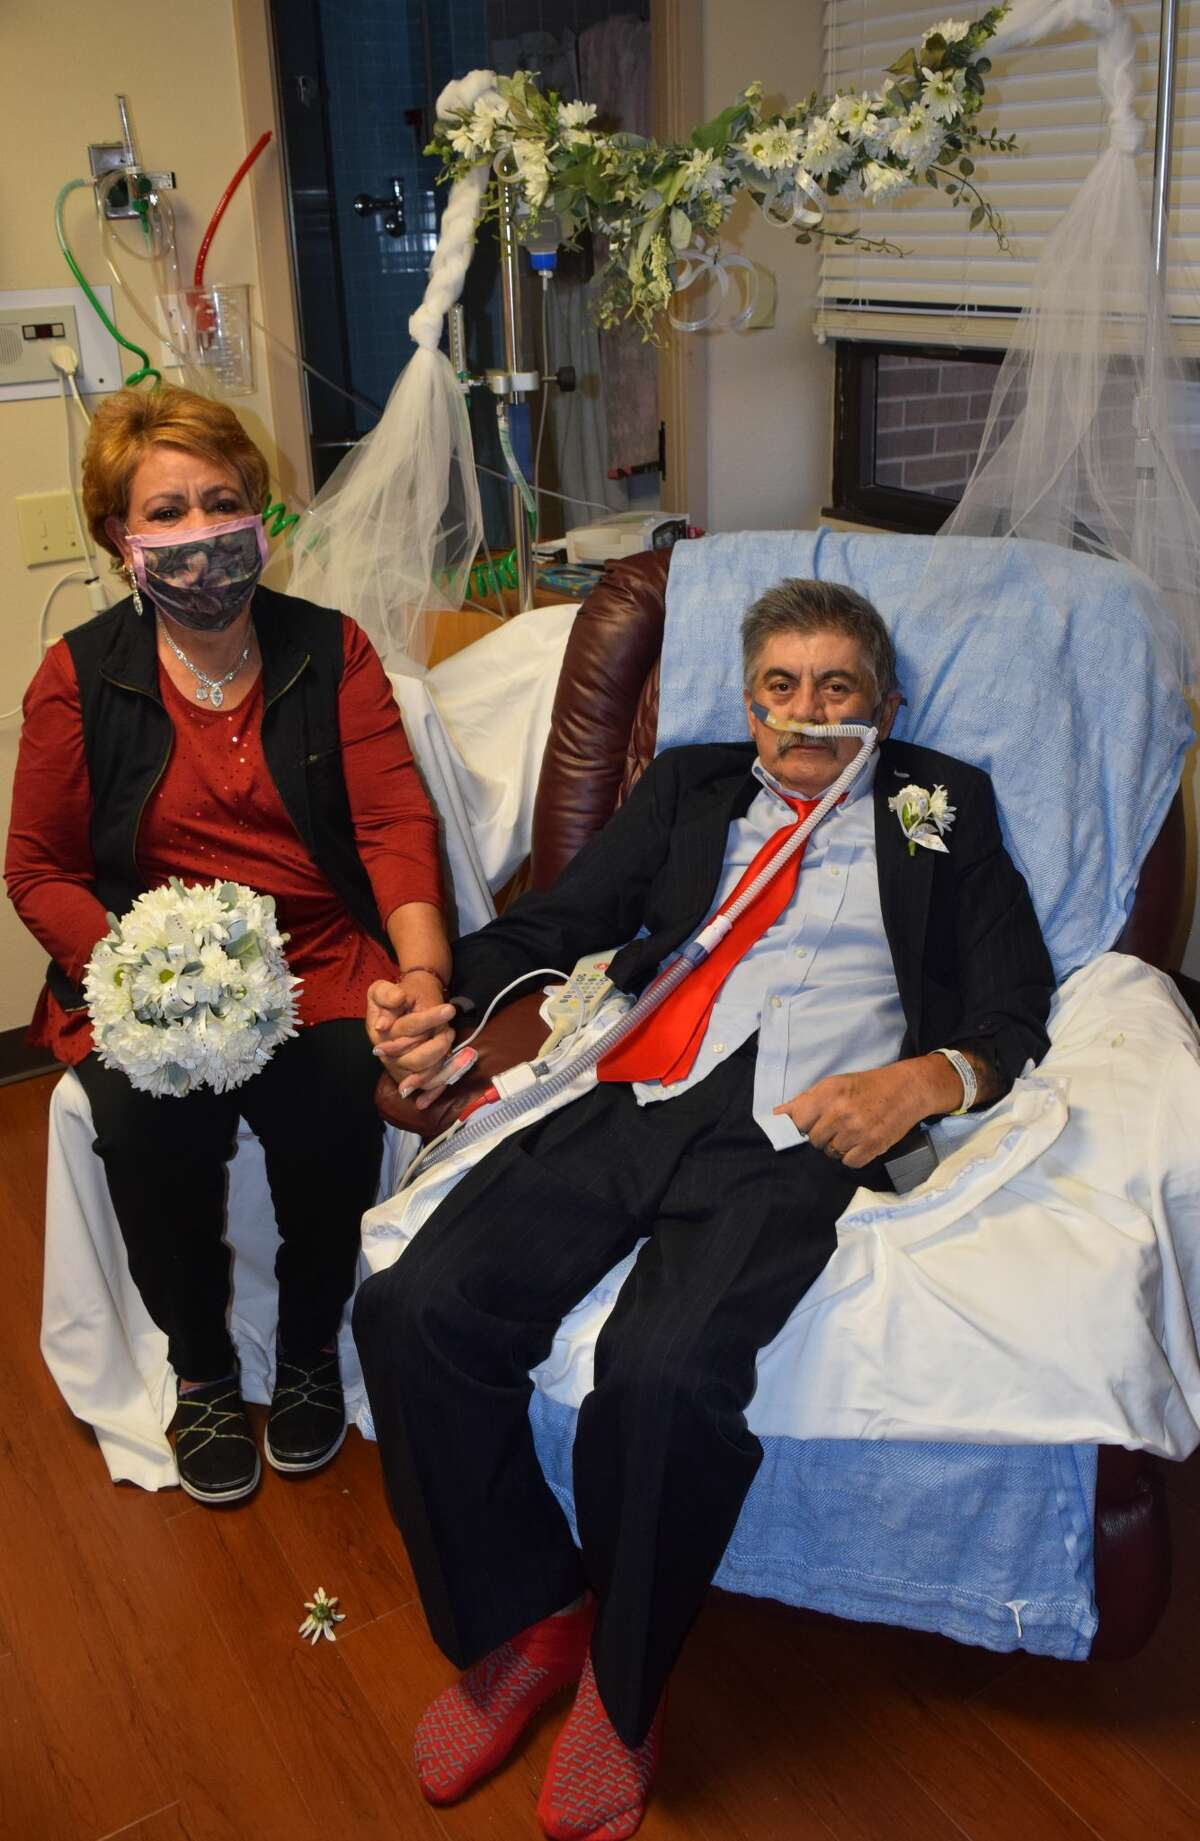 Juan and Victoria Gonzalez-Aranda wed in a special ceremony at Covenant Health Plainview on Jan. 6.